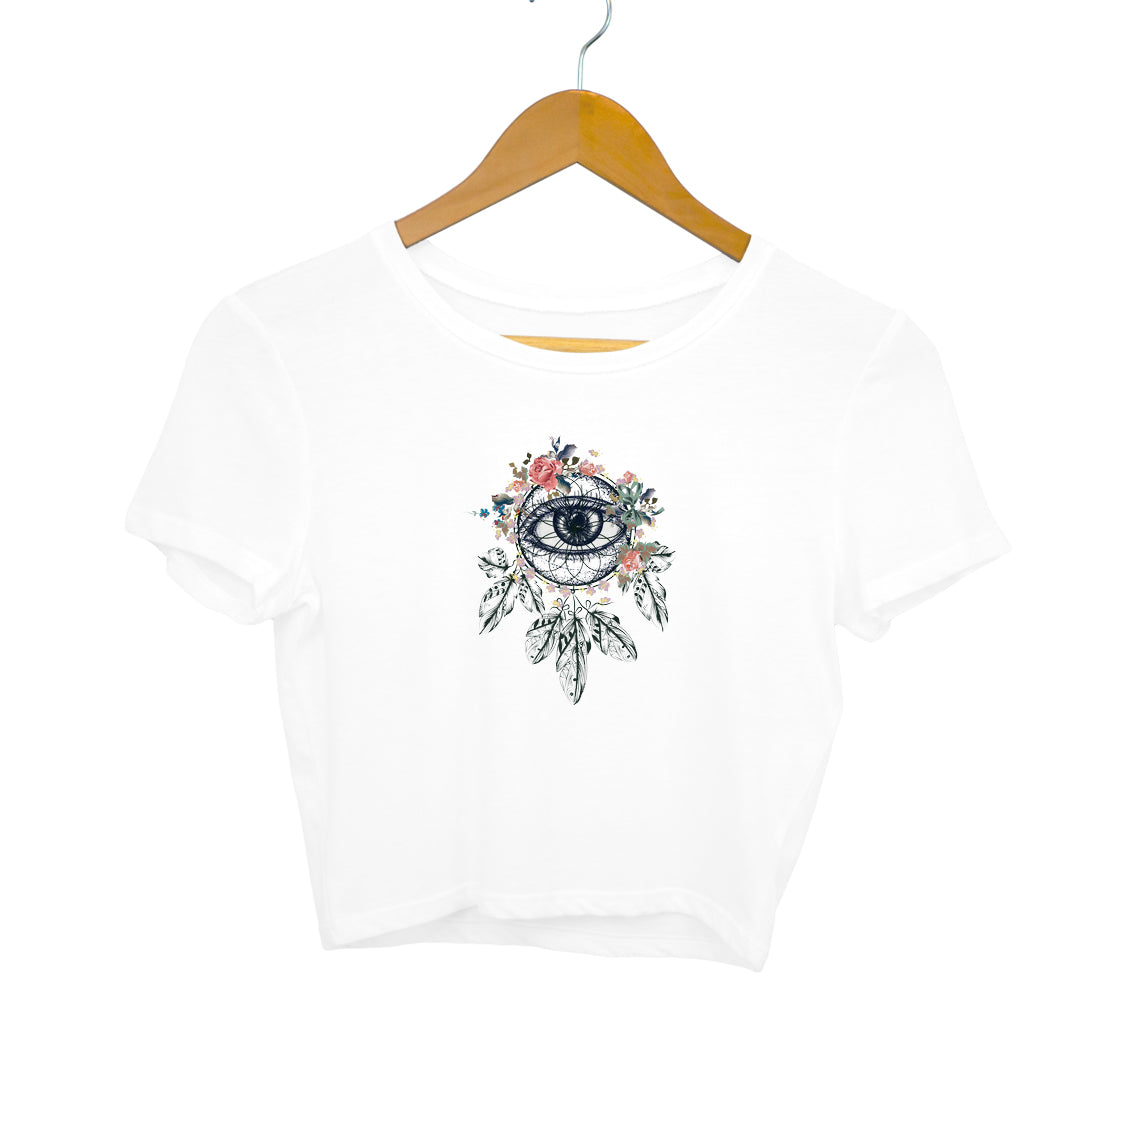 Baromin printed Crop Top